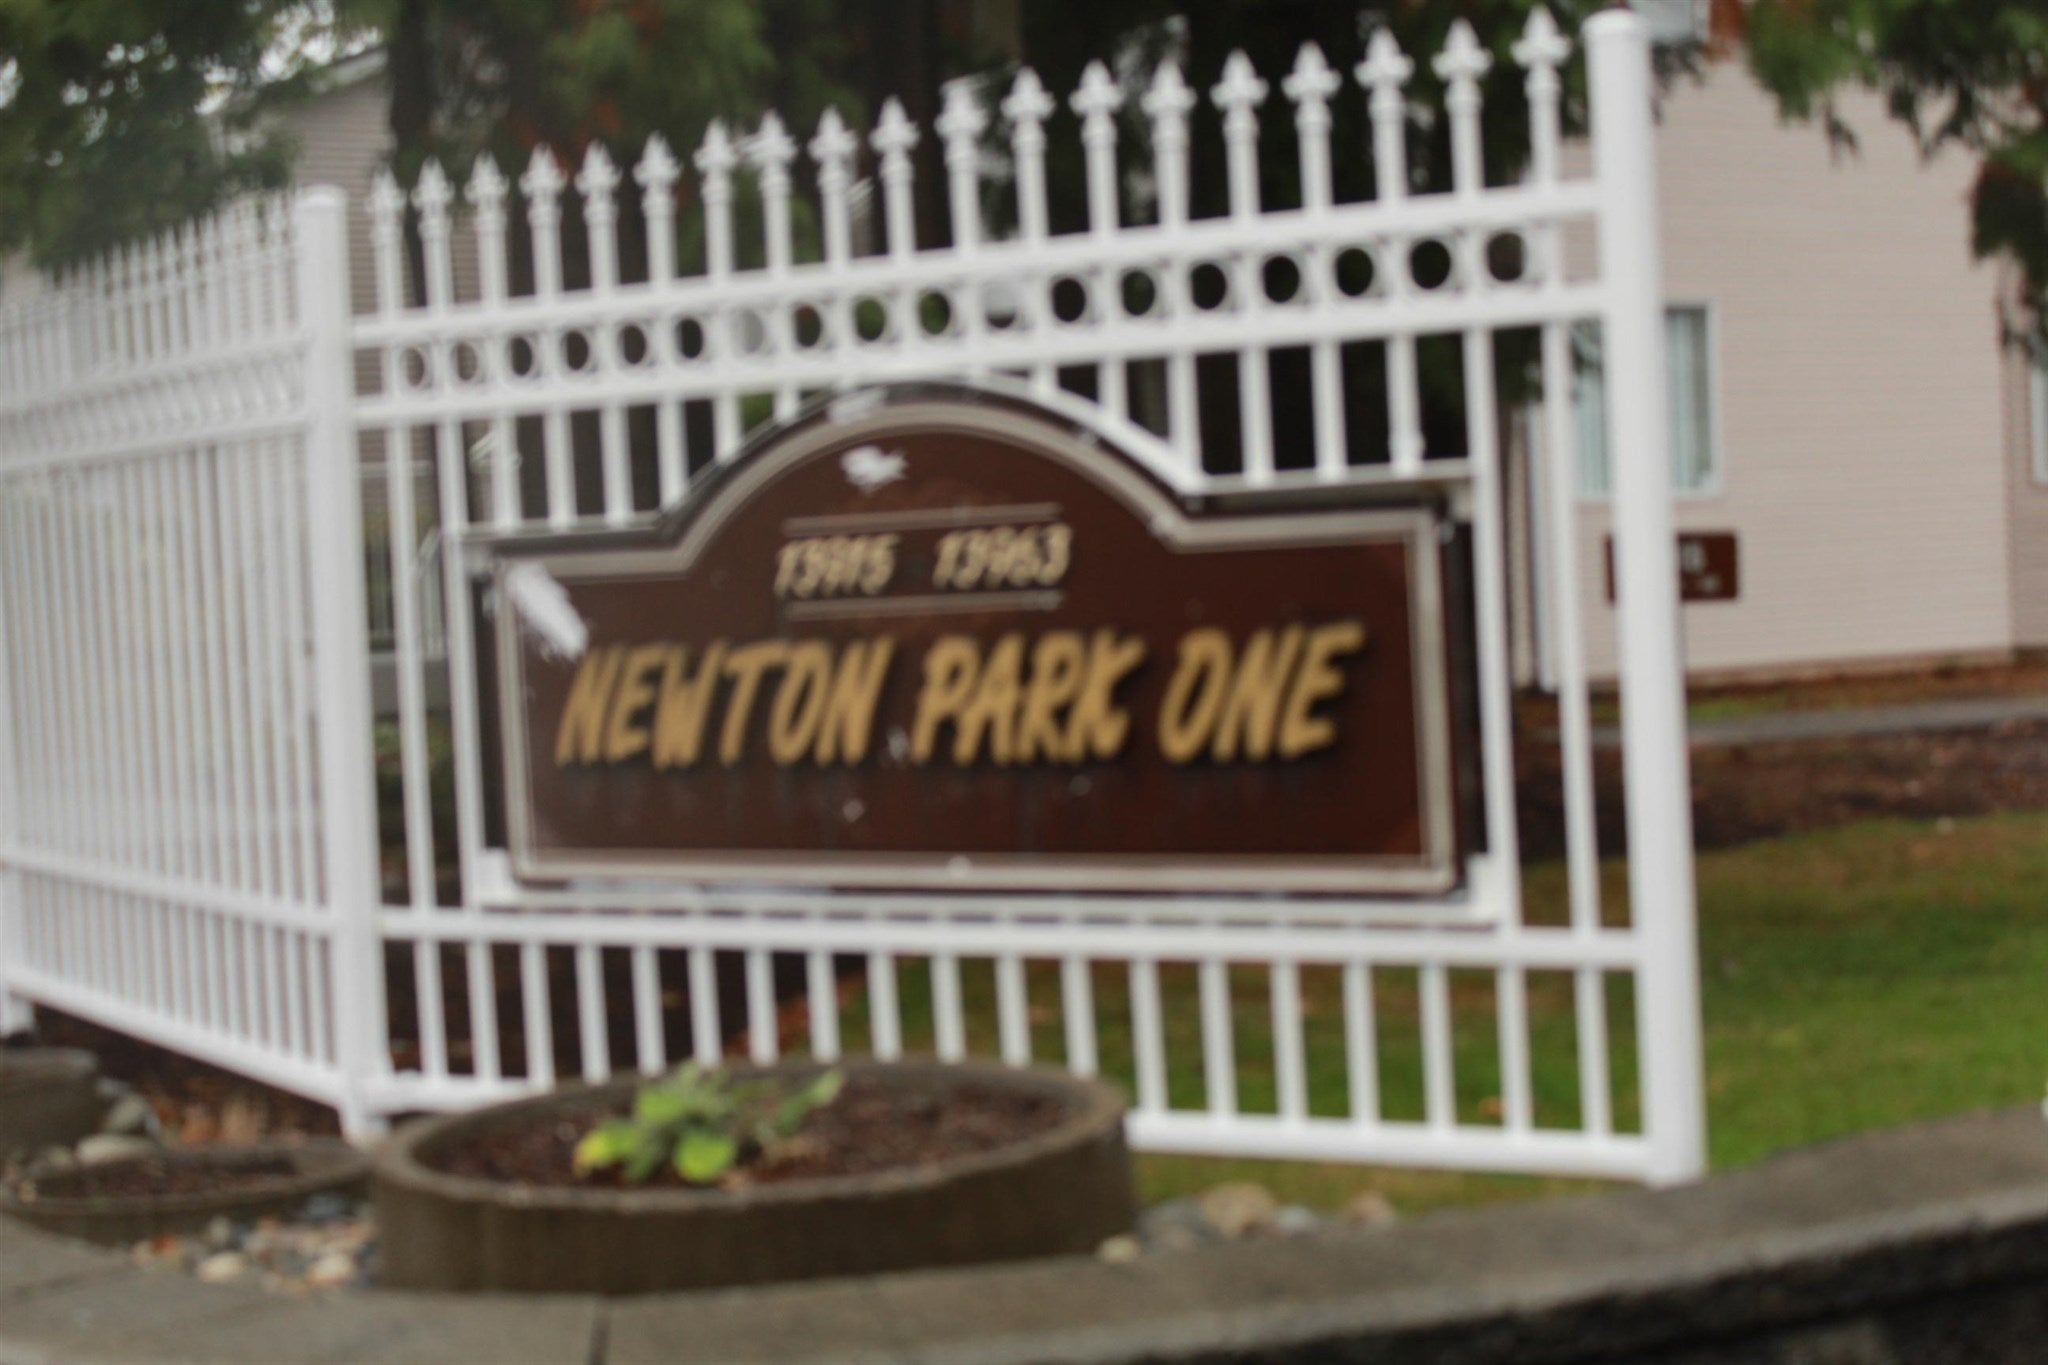 701 13935 72 AVENUE - East Newton Townhouse for sale, 2 Bedrooms (R2601112) - #10